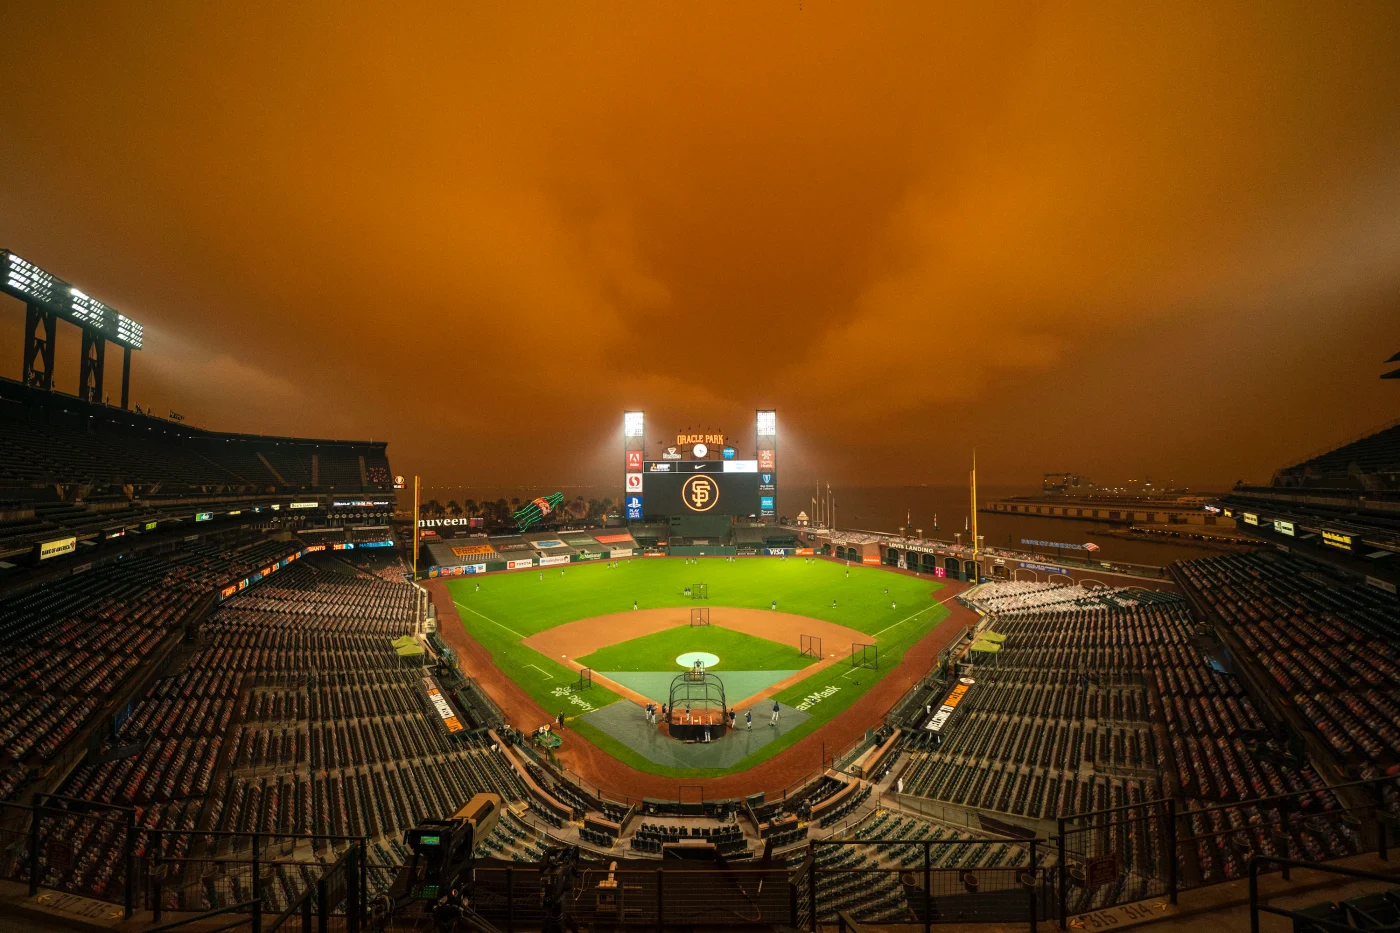 An eerie, almost apocalyptic view at the A's and Giants game during coronavirus.